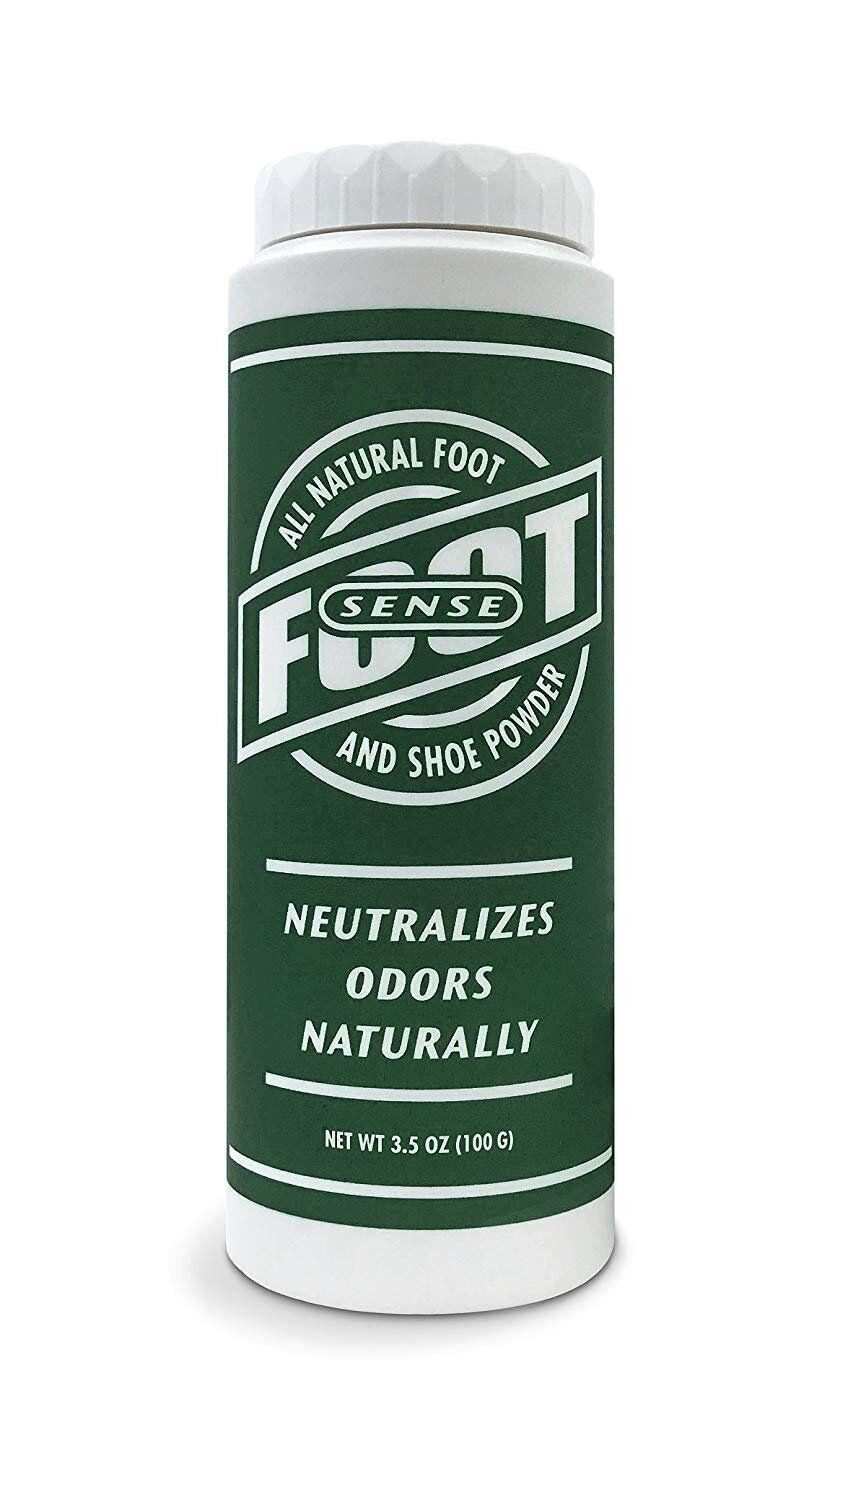 "Find&nbsp;<strong><a href=""https://www.amazon.com/SENSE-Natural-Smelly-Foot-Powder/dp/B00O2DQO4C/ref?tag=thehuffingtop-20&amp;th=1"" rel=""nofollow noopener"" target=""_blank"" data-ylk=""slk:FOOT SENSE All Natural Smelly Foot &amp; Shoe Powder"" class=""link rapid-noclick-resp"">FOOT SENSE All Natural Smelly Foot &amp; Shoe Powder</a></strong> for $14 on Amazon."